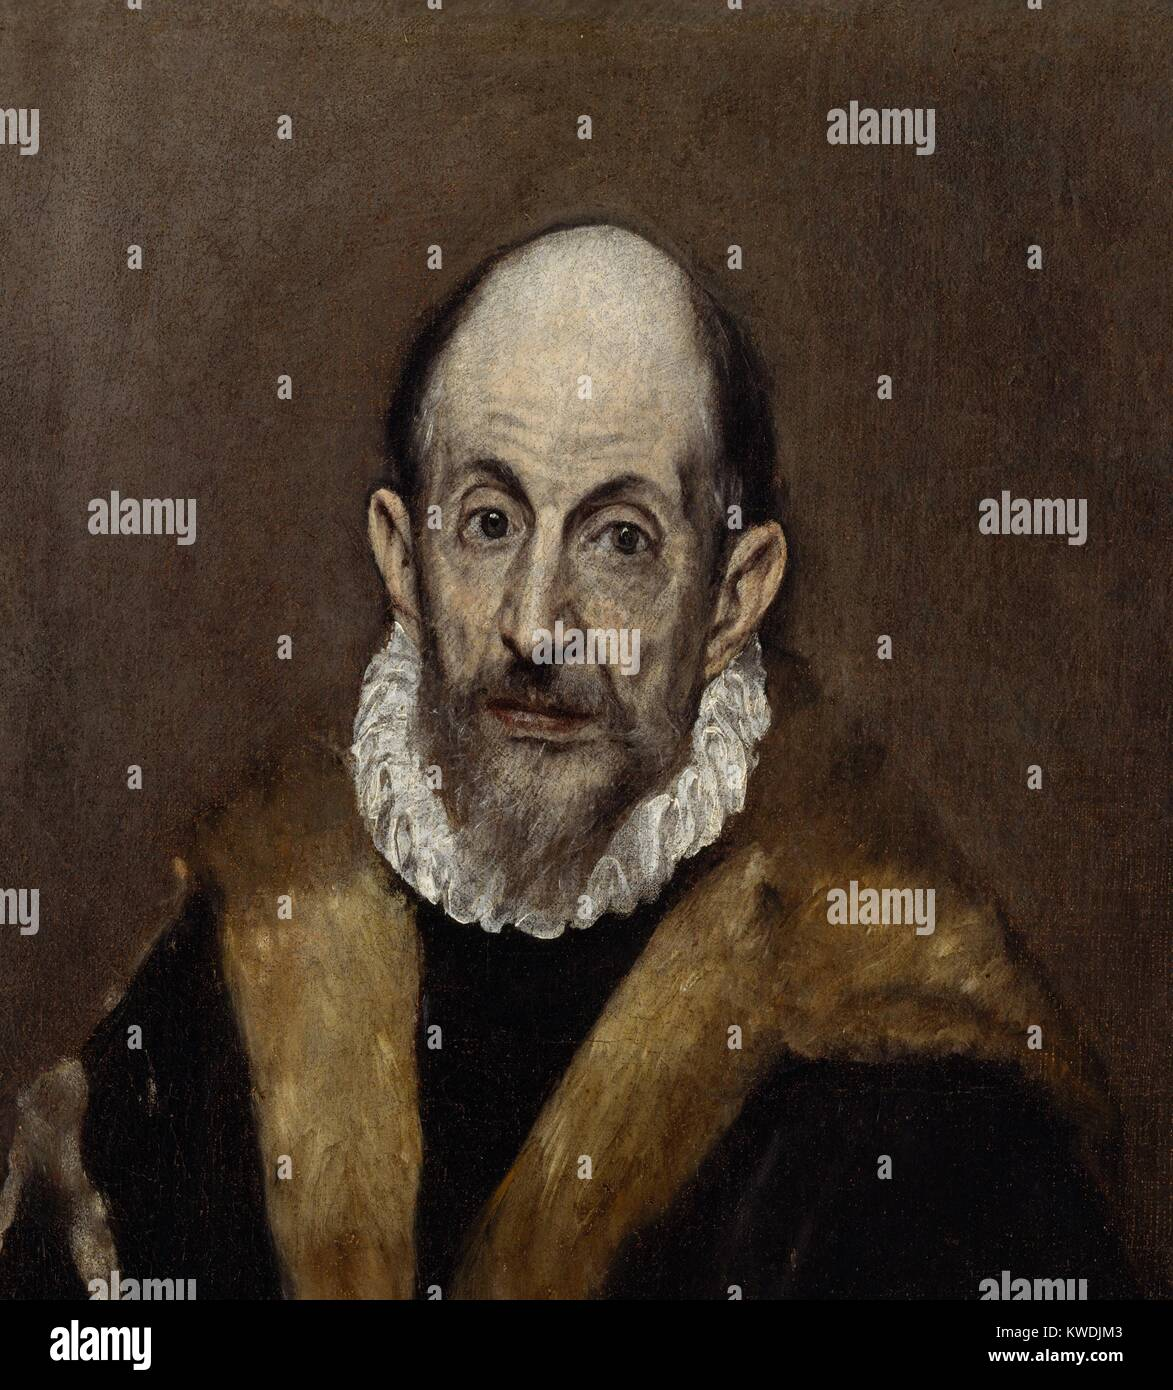 PORTRAIT OF AN OLD MAN, by El Greco, 1595–1600, Spanish Renaissance painting, oil on canvas. El Greco's portraits - Stock Image